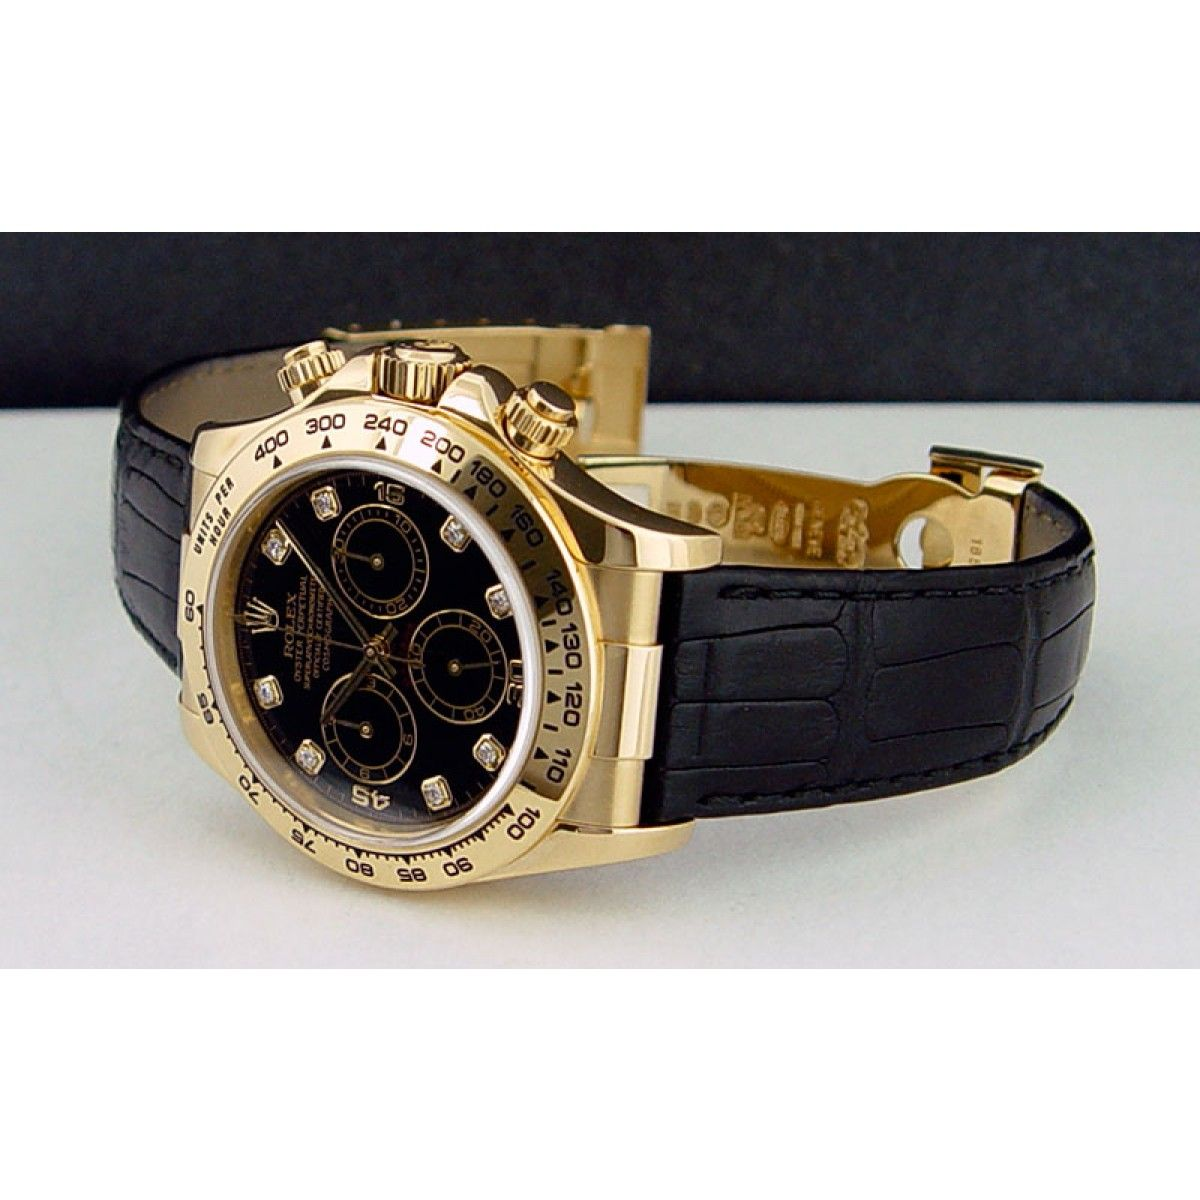 gold diamond rolex watches hd gold rolex watches men watch gold diamond rolex watches hd gold rolex watches men watch diamantbilds